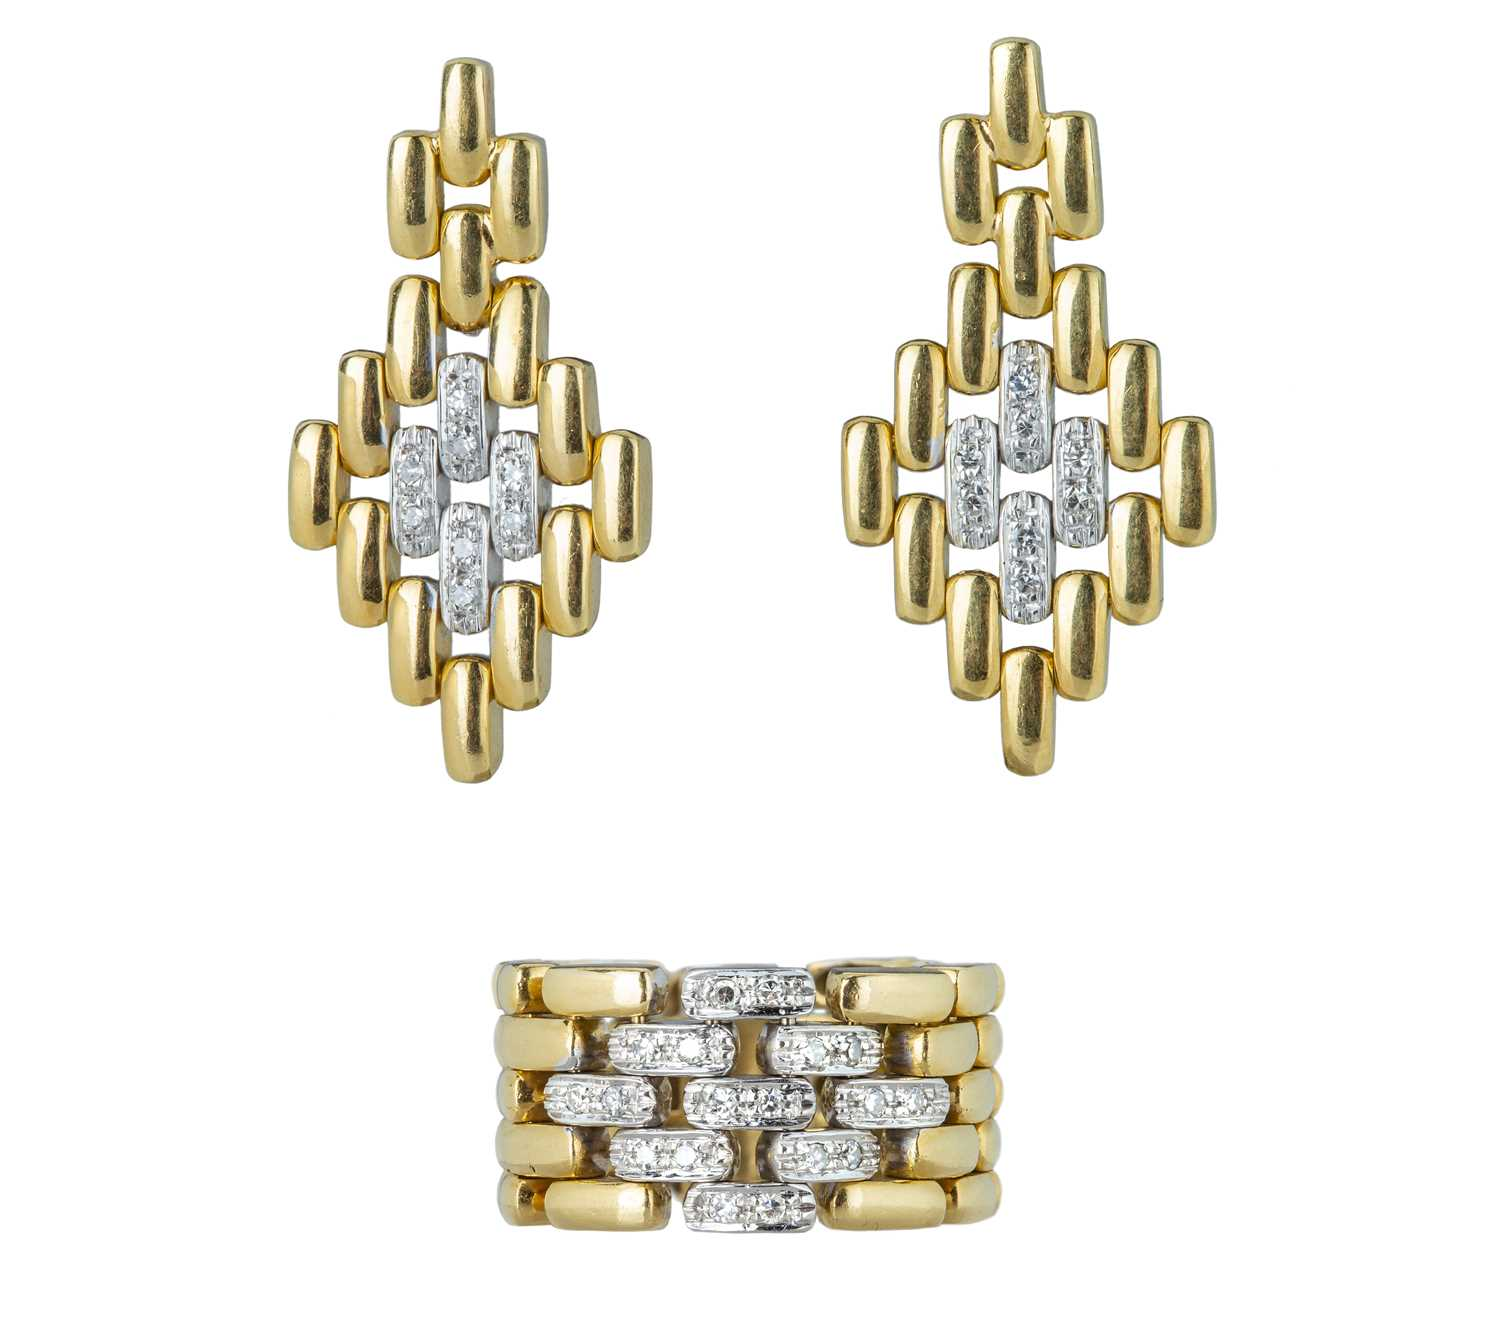 Lot 33 - A 1960s yellow gold and diamond tank-track ring and earring set.